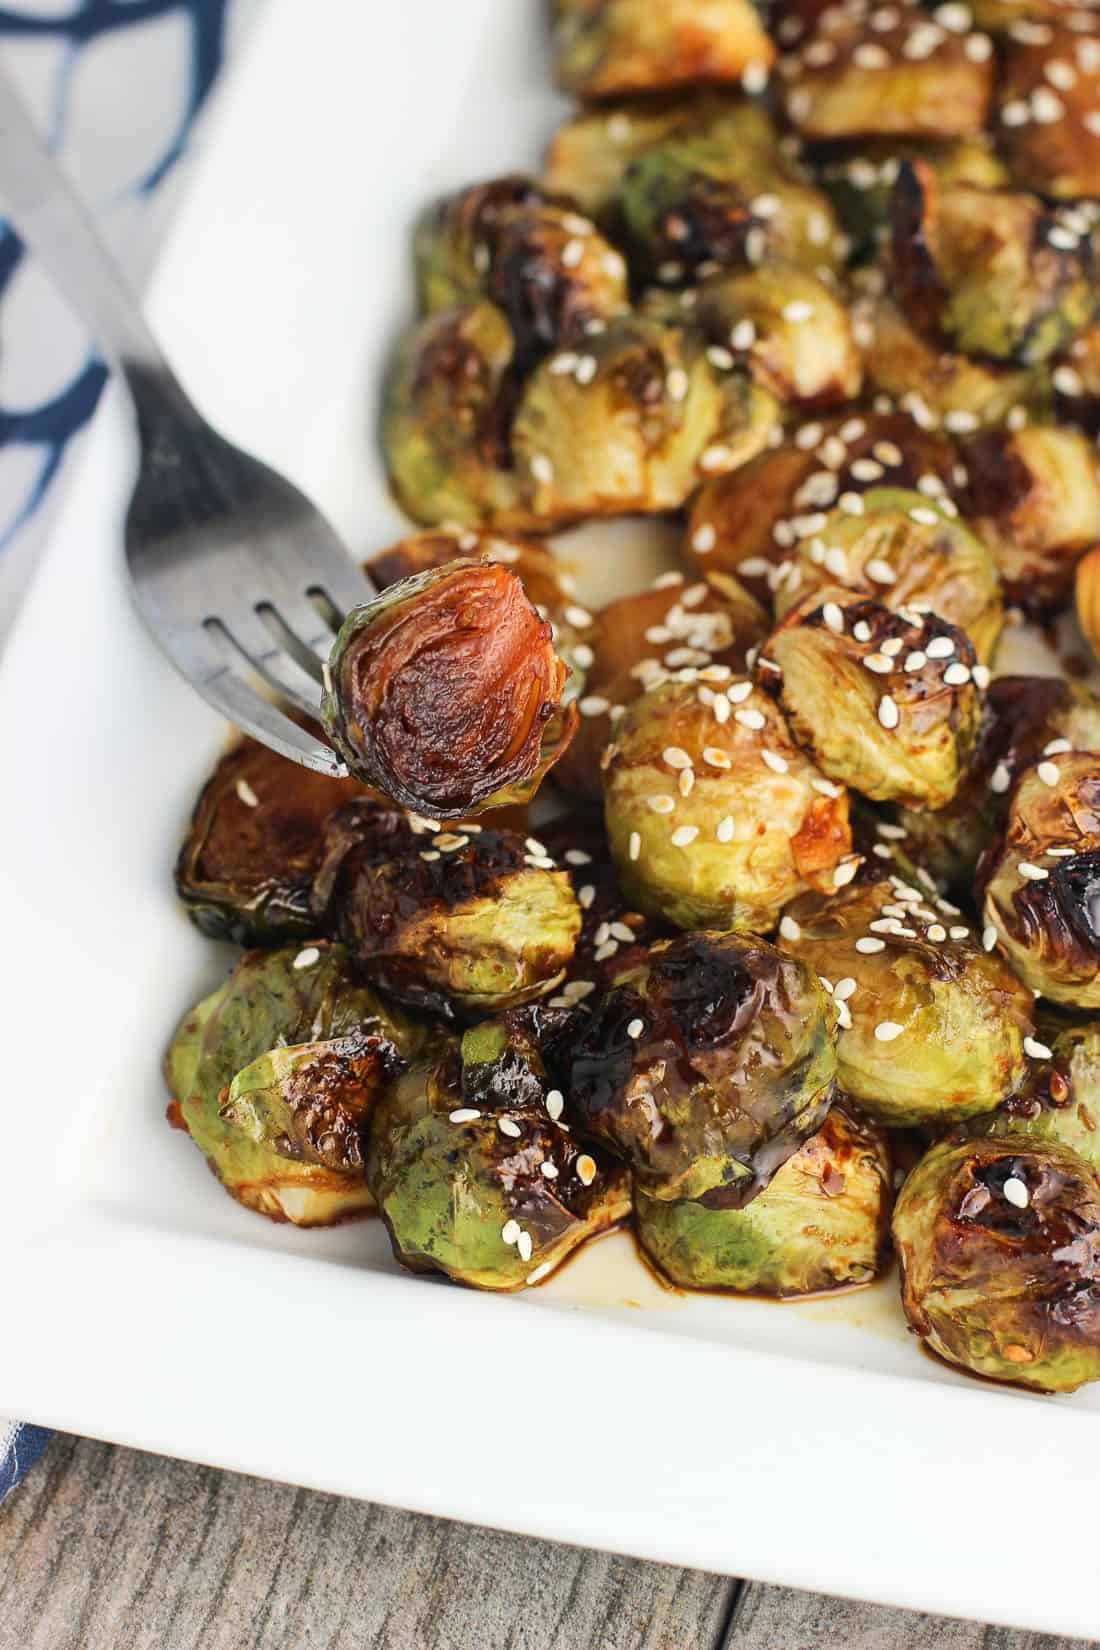 Honey Sesame Roasted Brussels Sprouts have a quick, five-ingredient glaze and are roasted to perfect in the oven. A flavorful way to prepare a sometimes 'whatever' vegetable side dish.